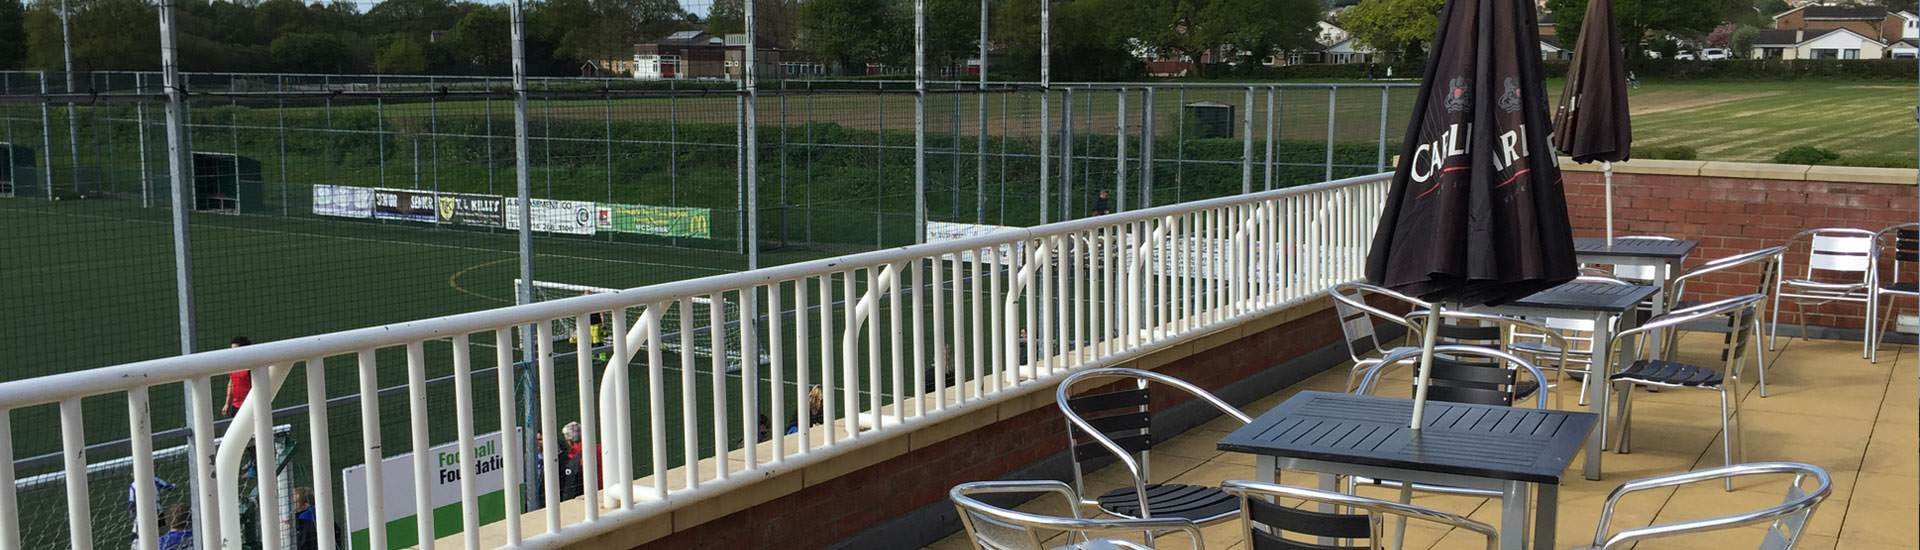 Balcony Bar at Gosforth Fields